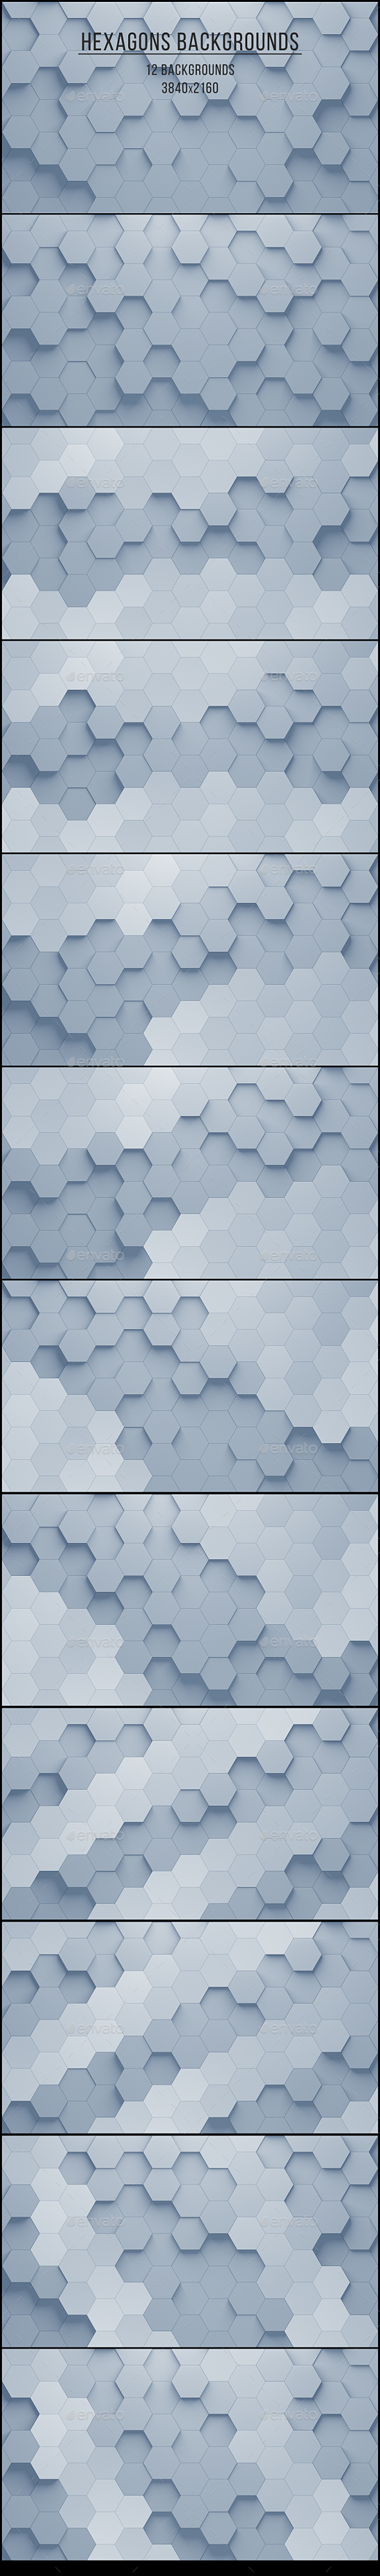 Hexagons Backgrounds - Abstract Backgrounds